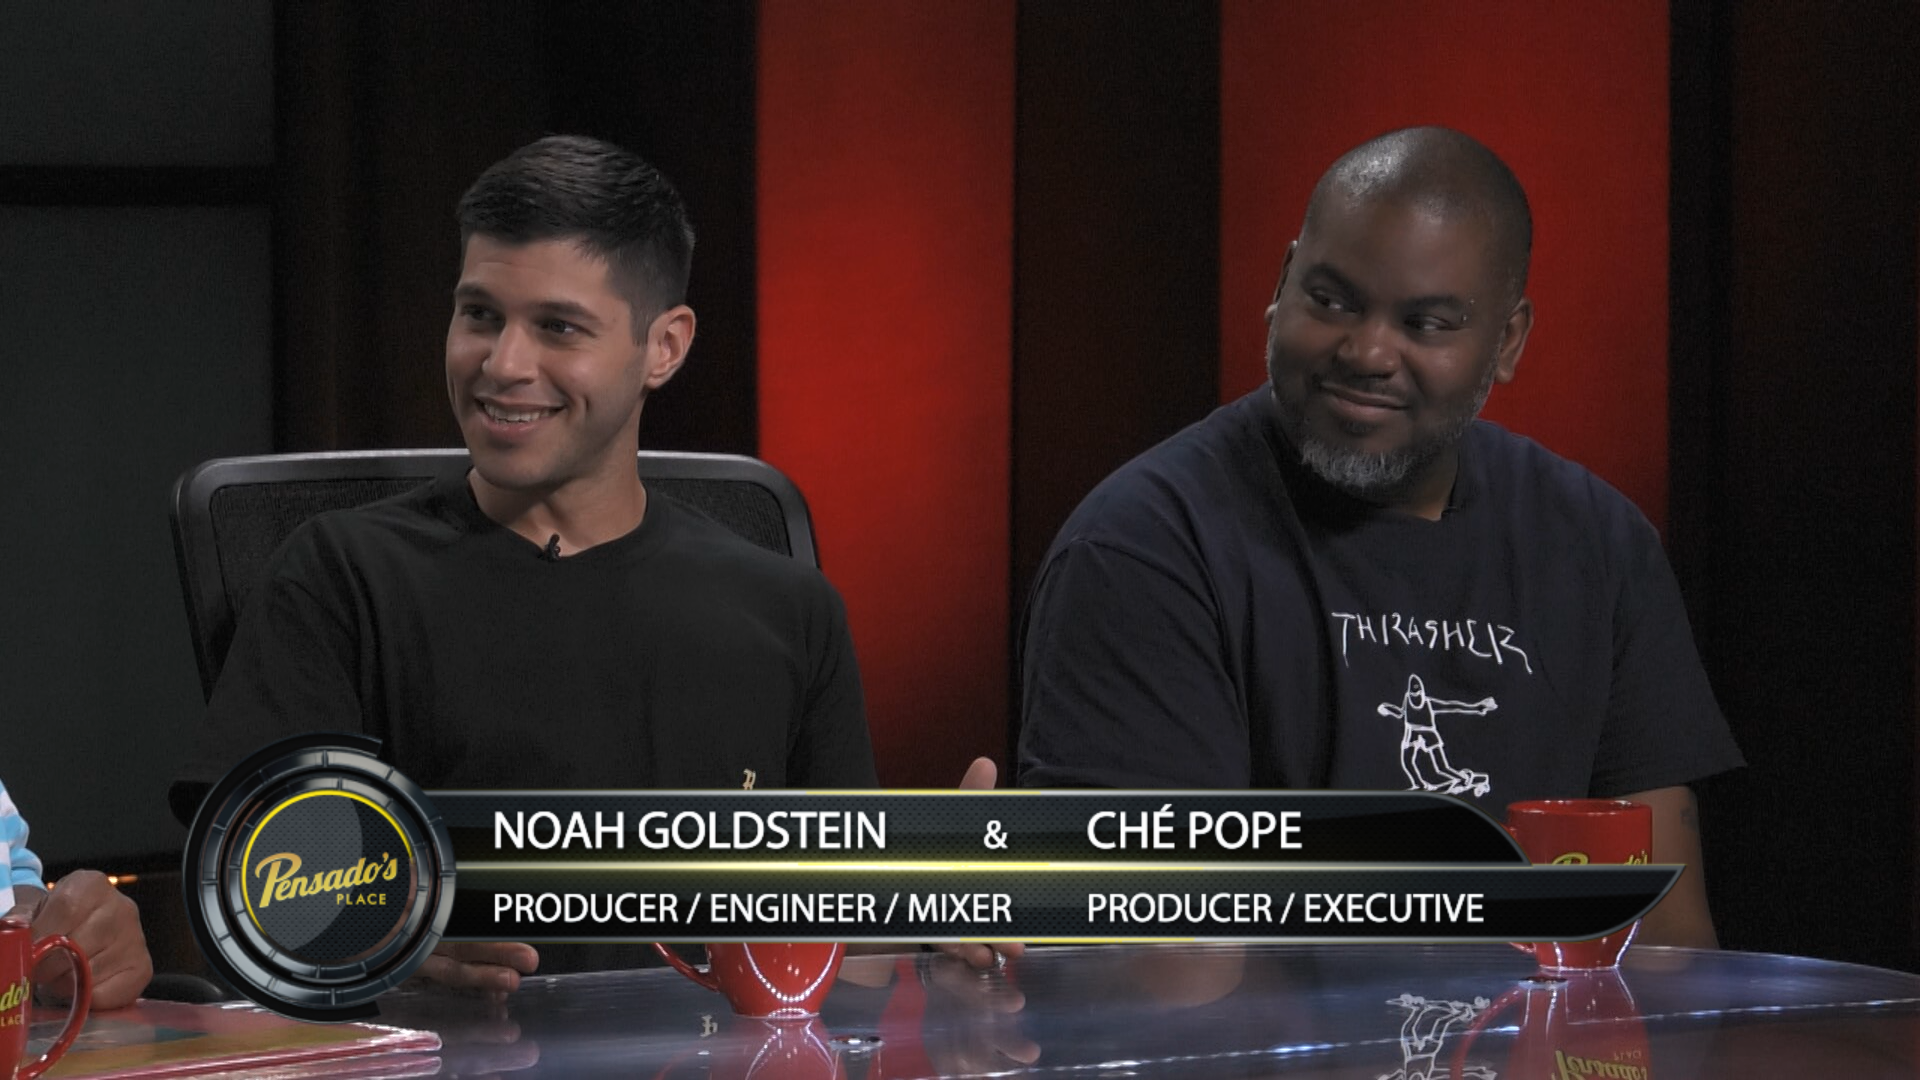 Noah Goldstein & Ché Pope of G.O.O.D. Music